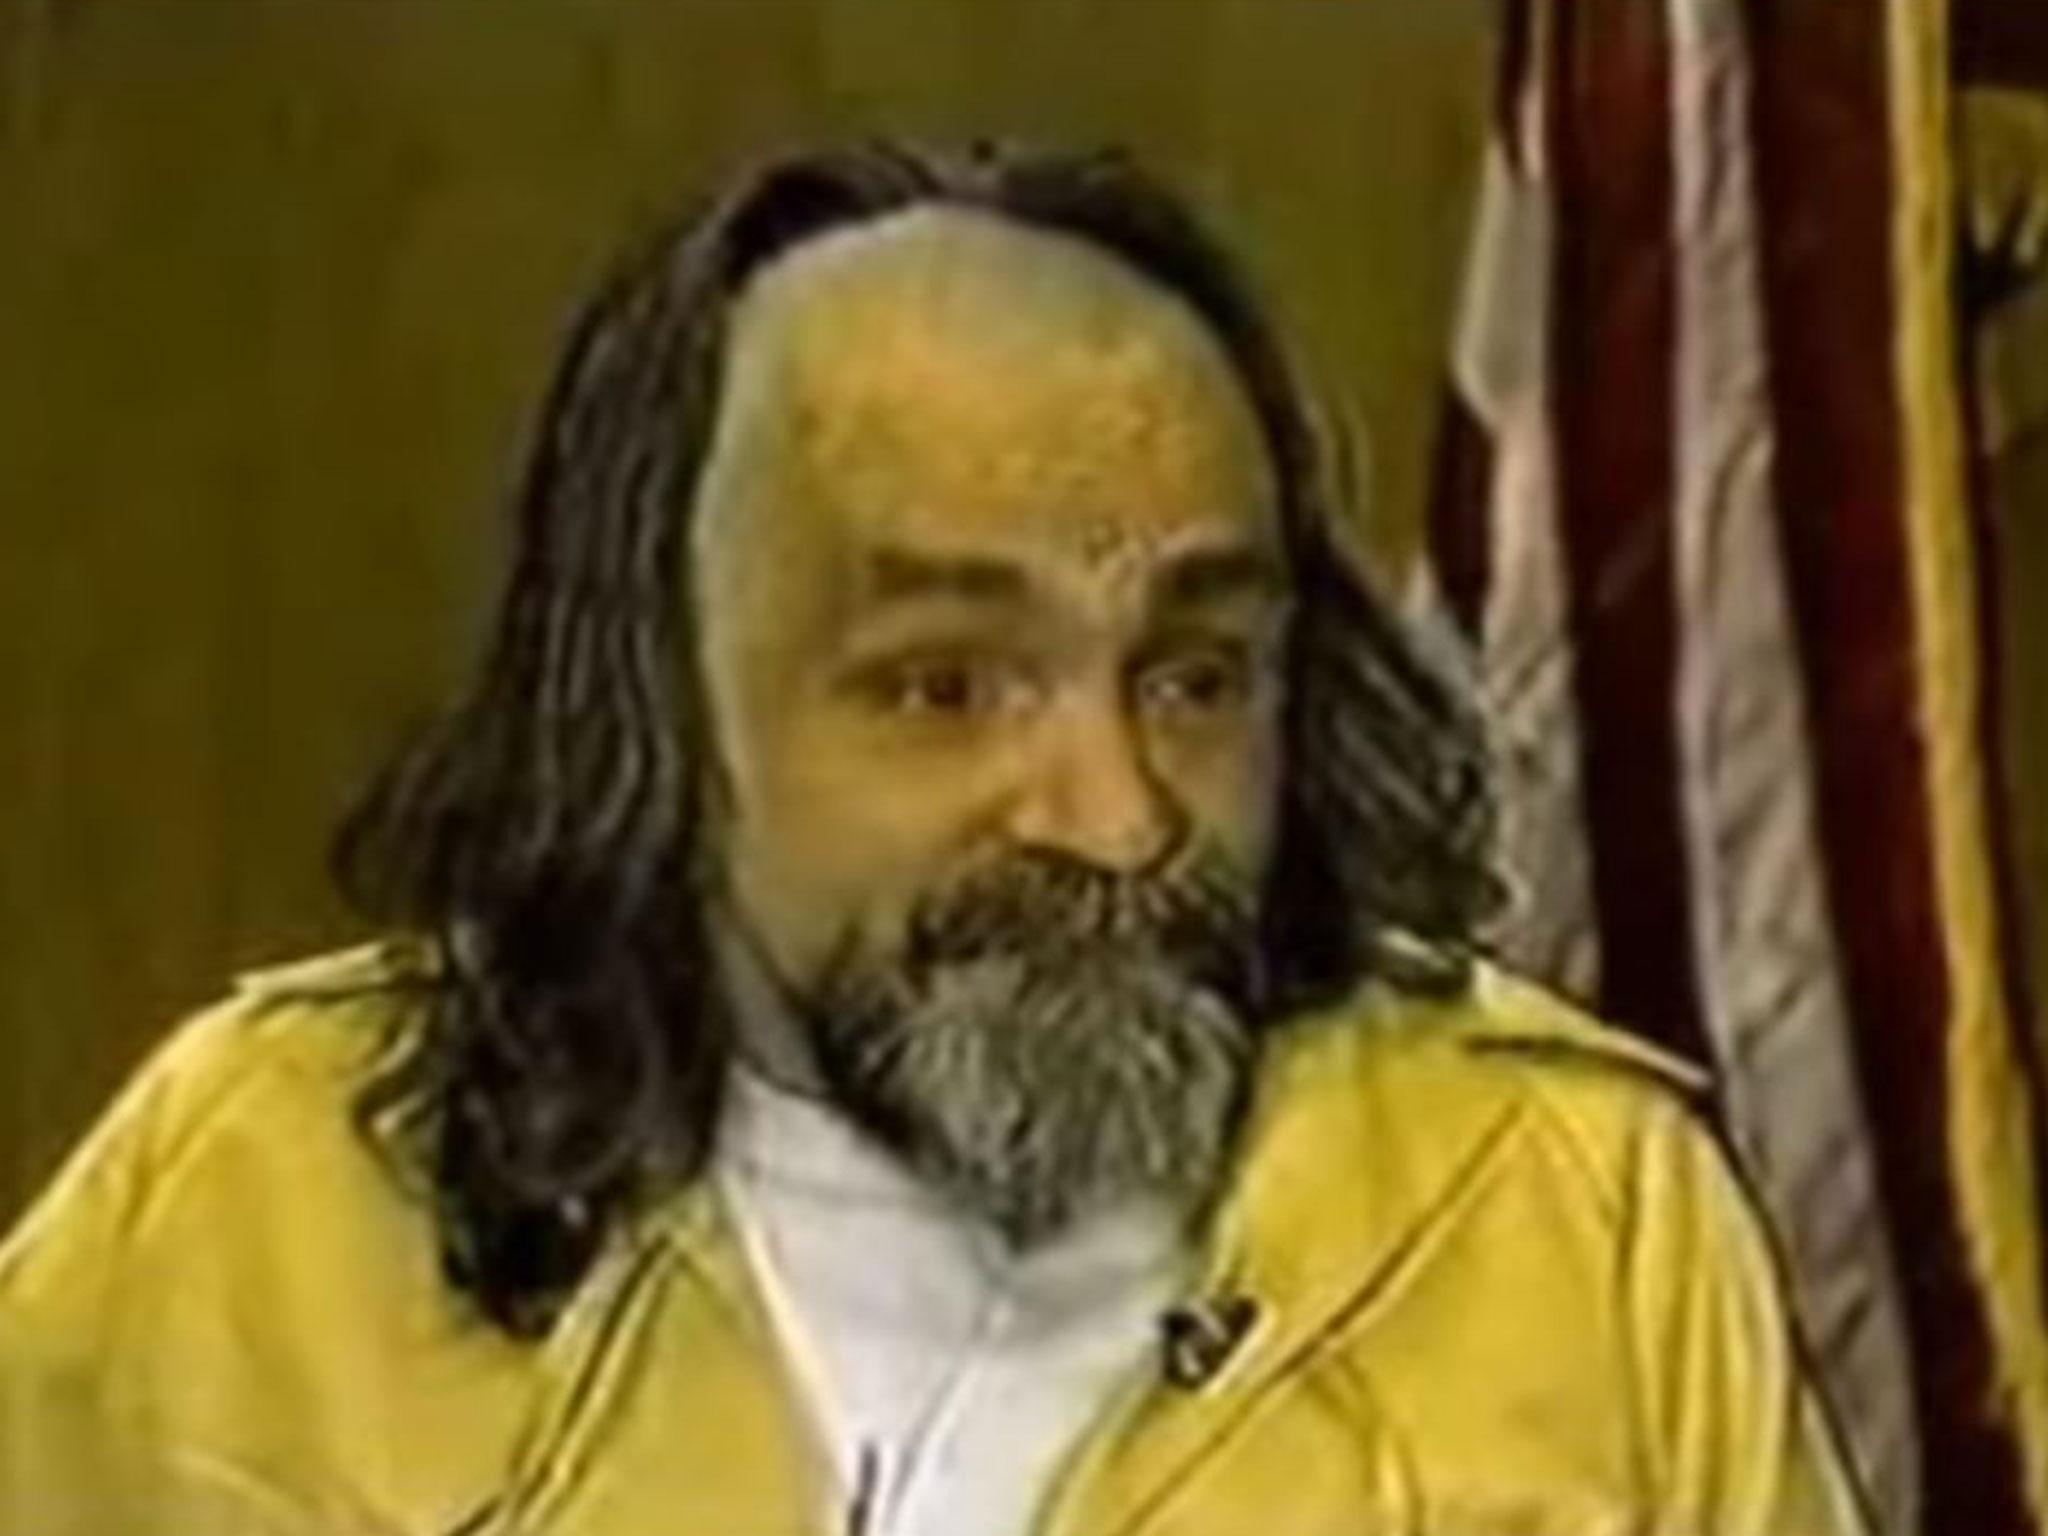 Charles Manson: What happened when a journalist asked